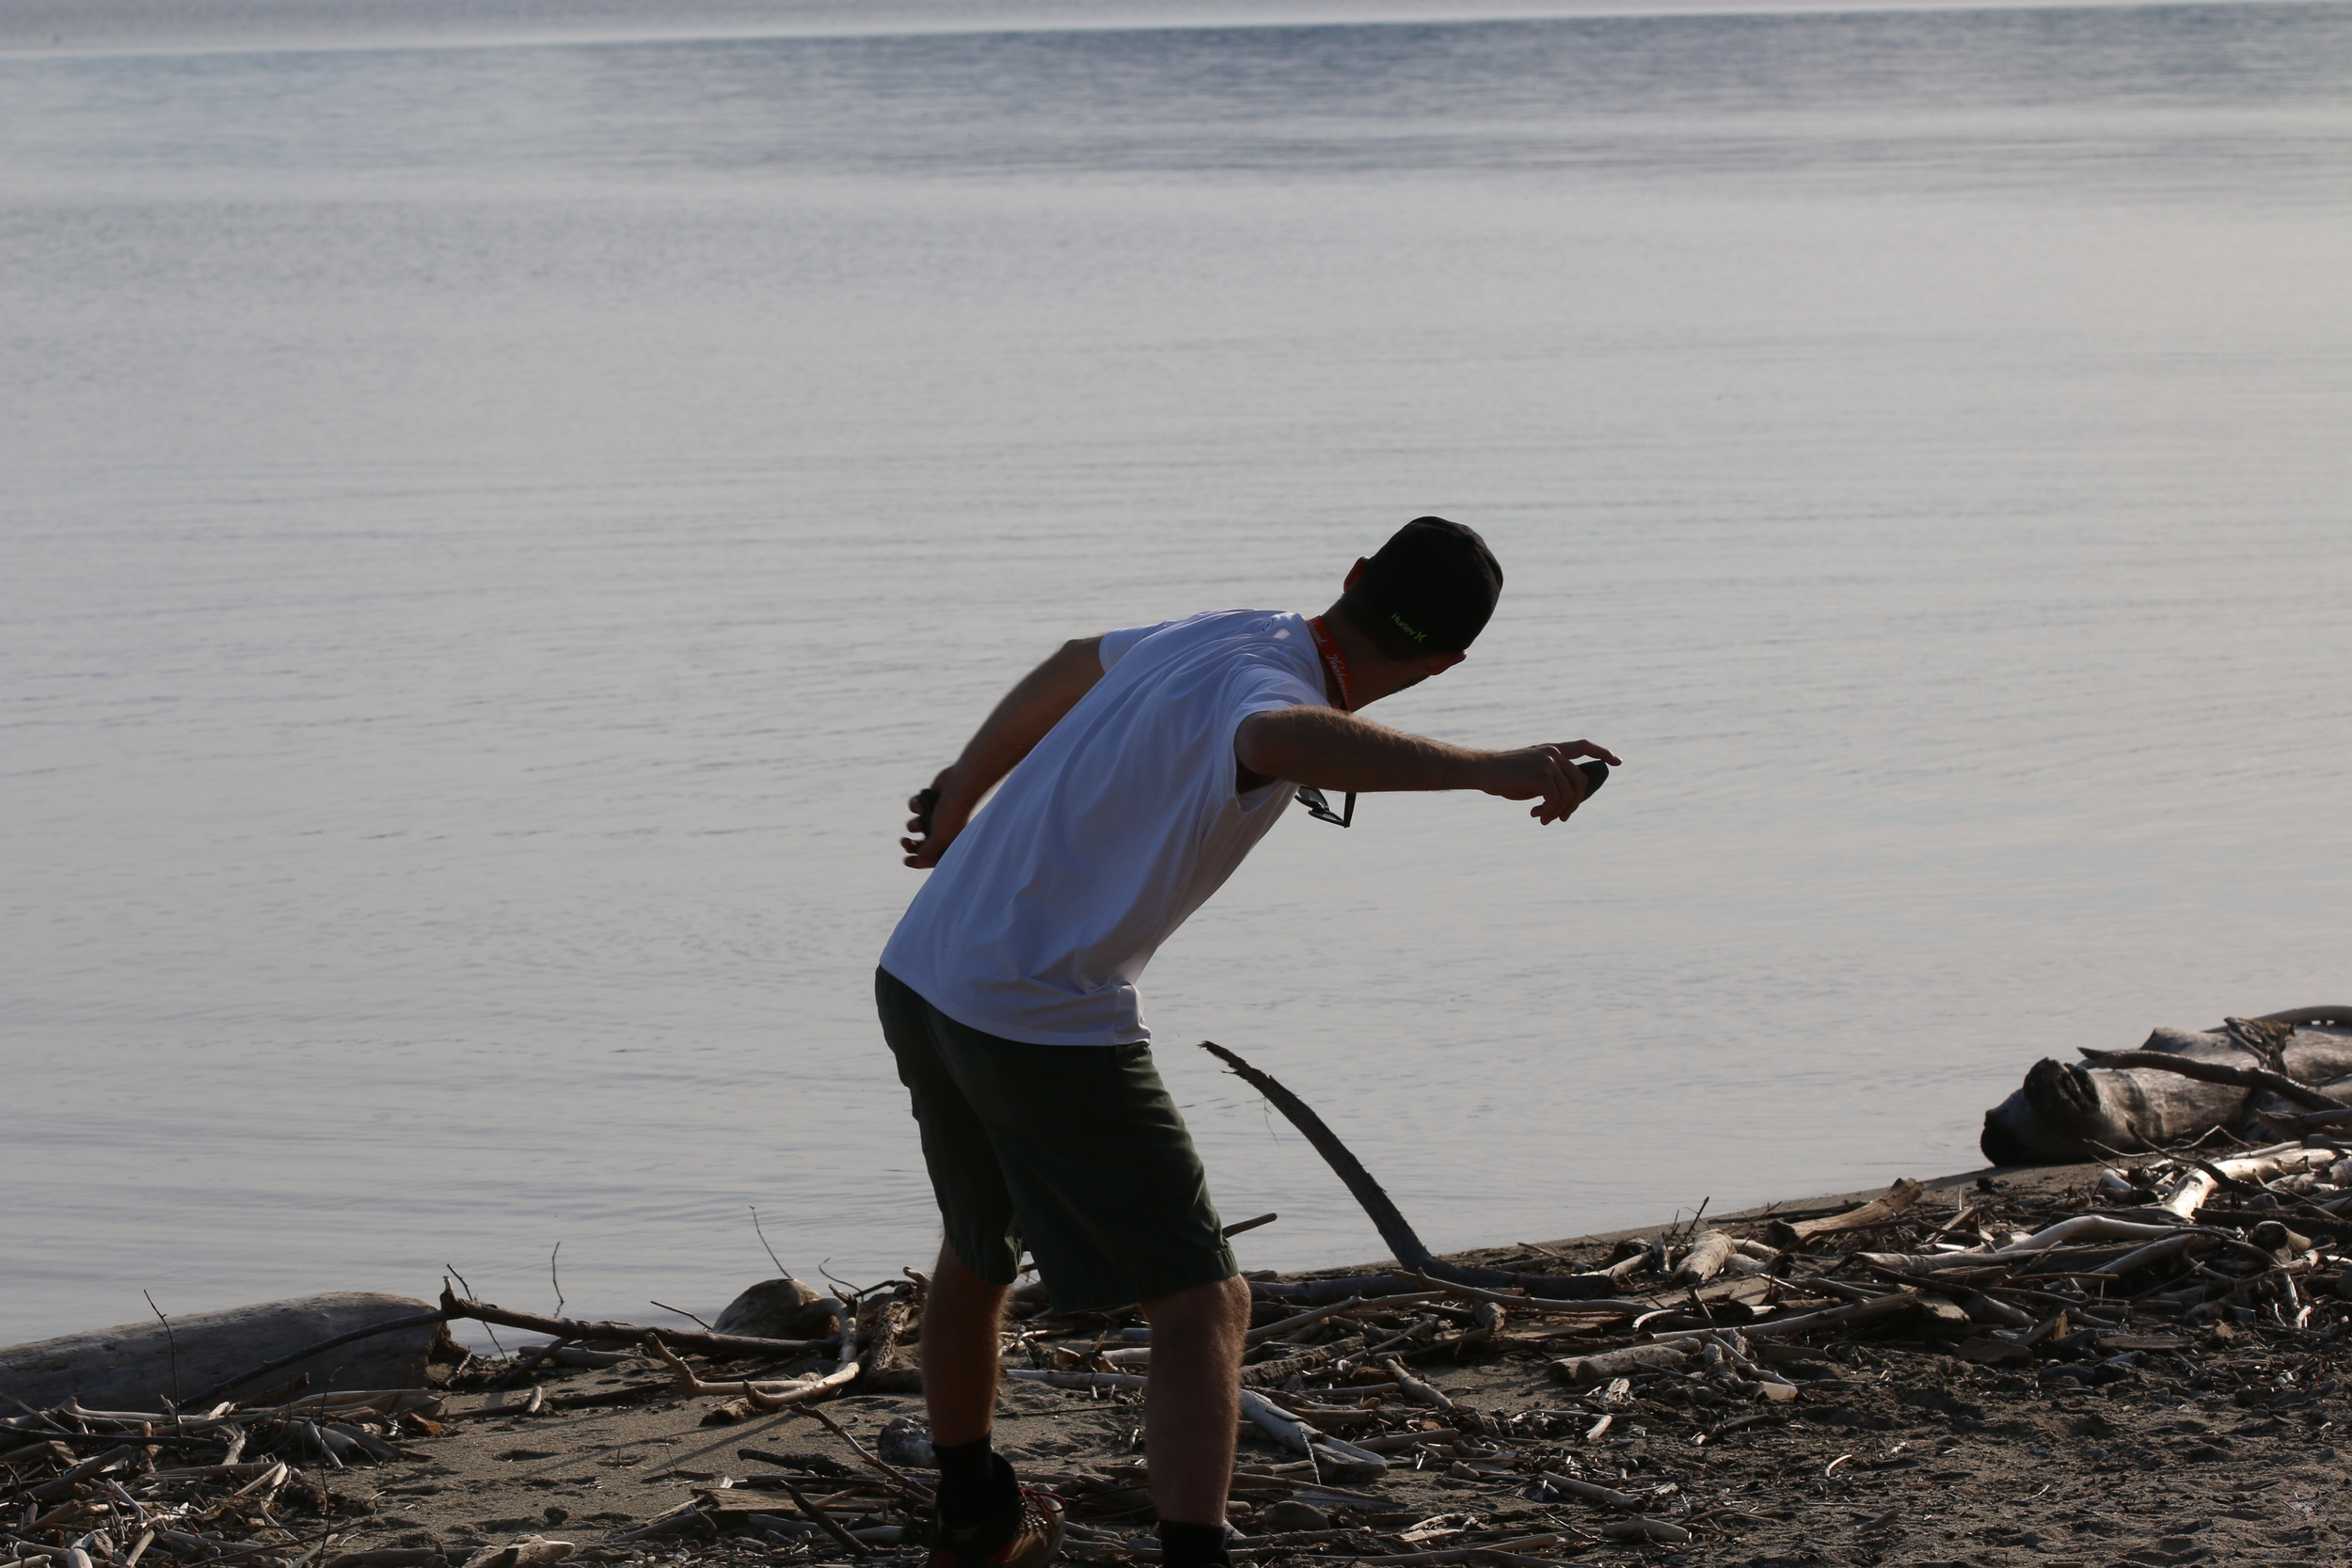 Skipping rocks my whole life [colchester point, VT]